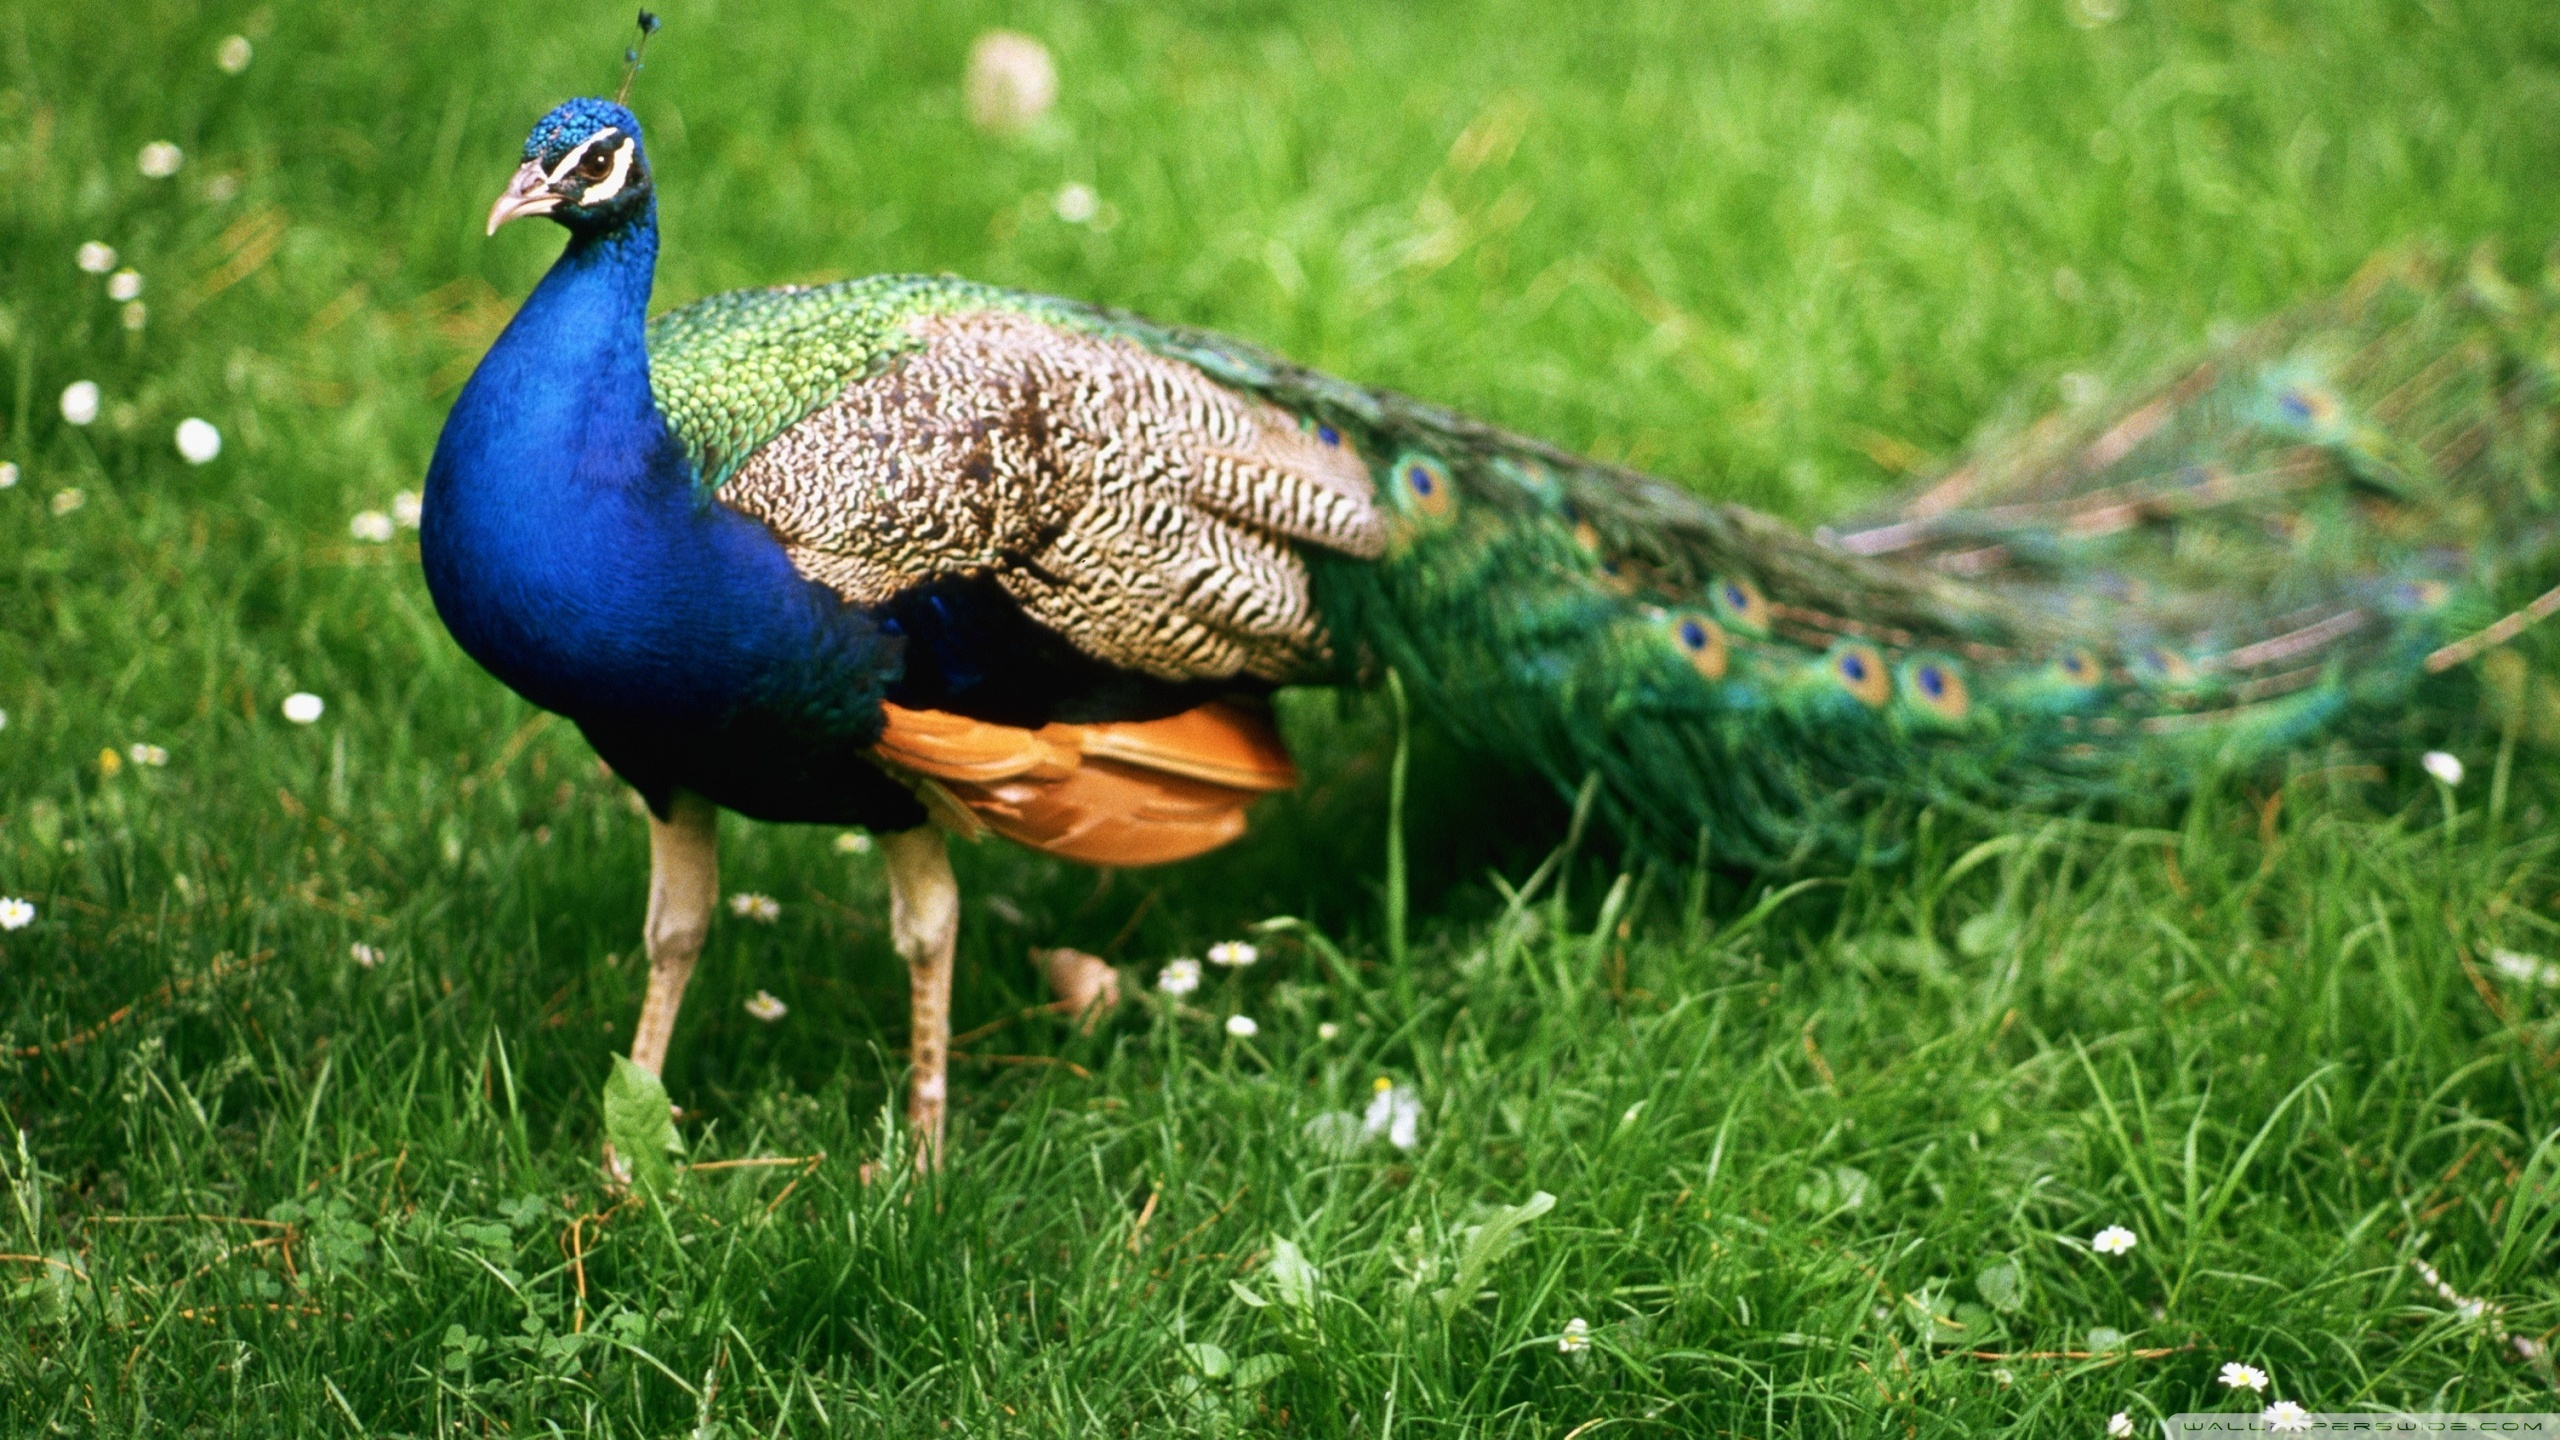 peacock wallpapers free download for background